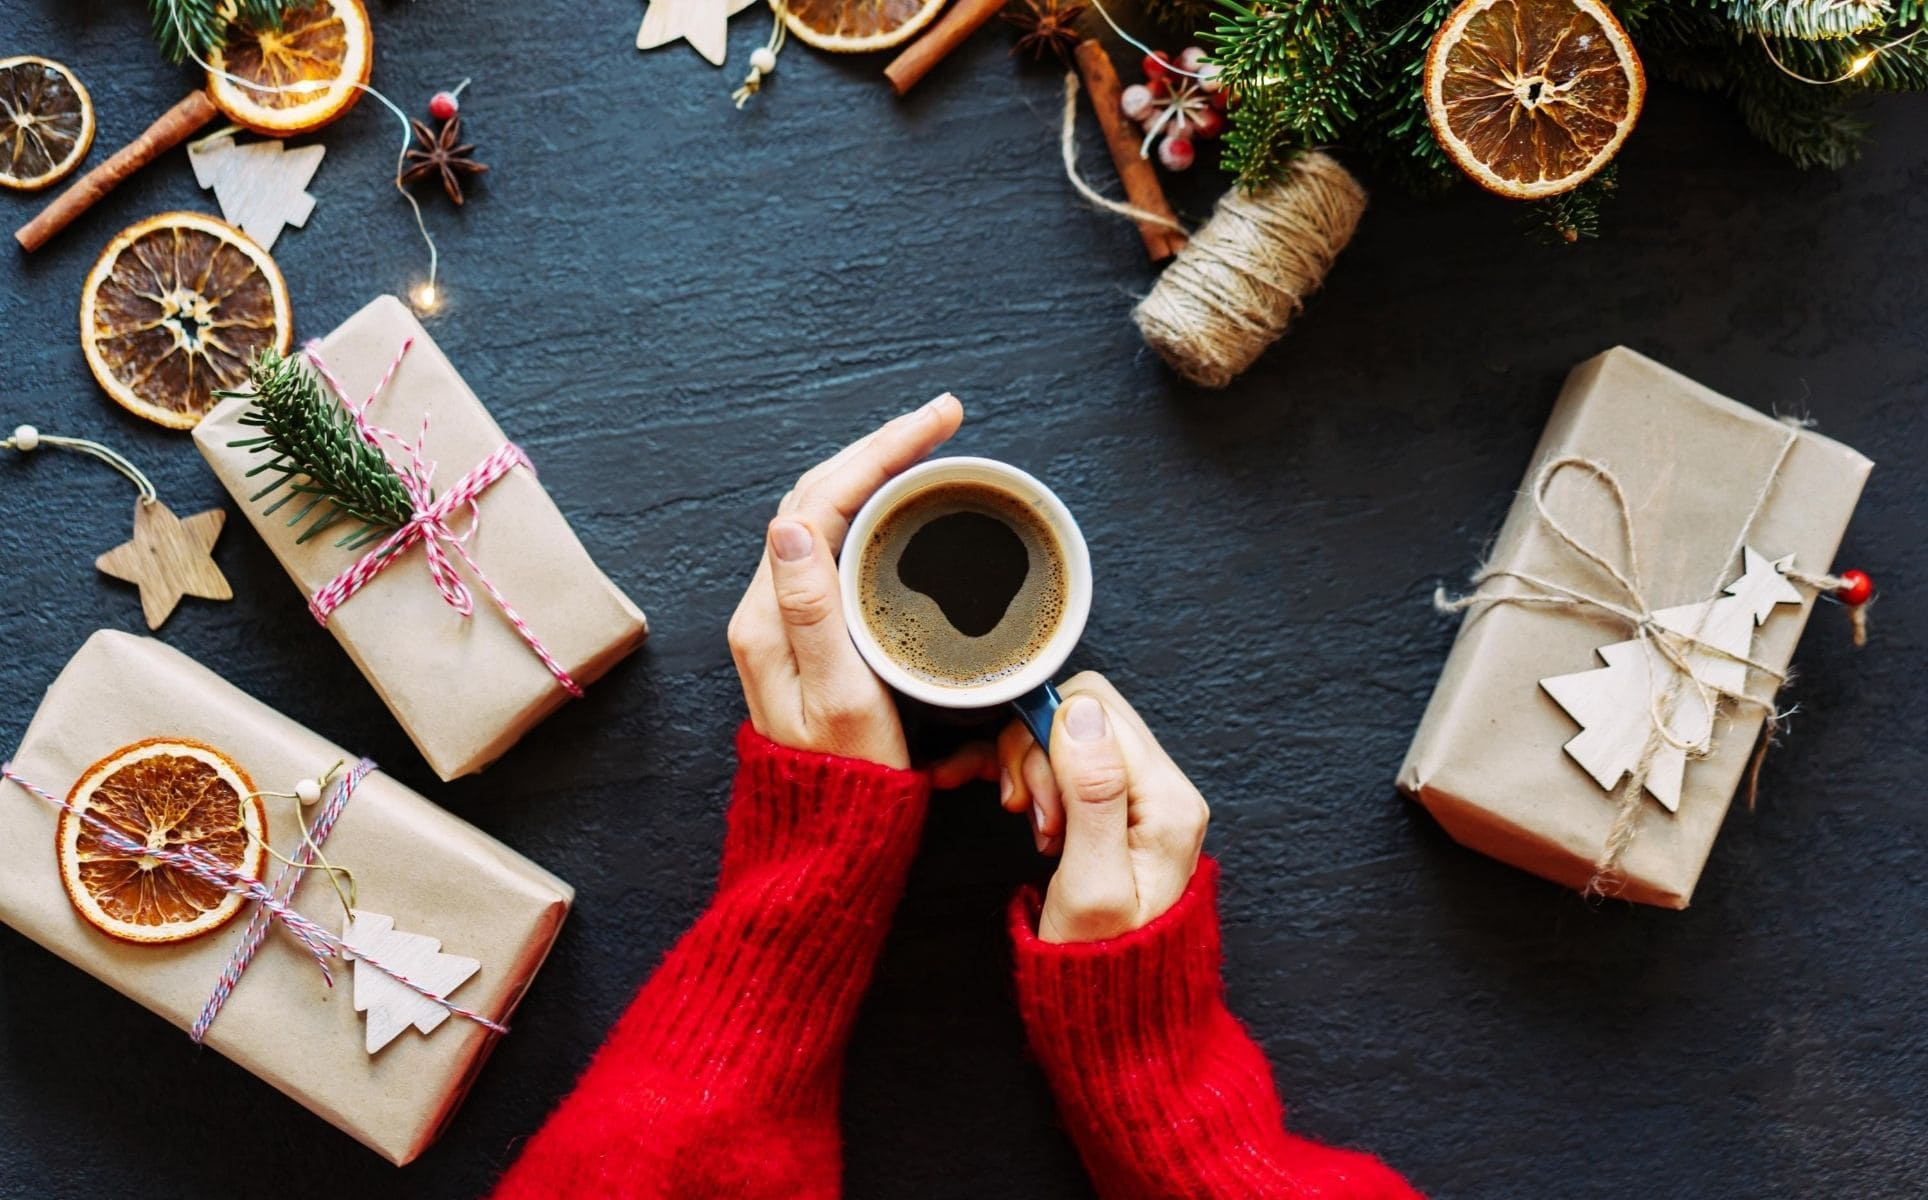 Hand-wrapped gifts surround a pair of hands holding a mug filled with coffee.